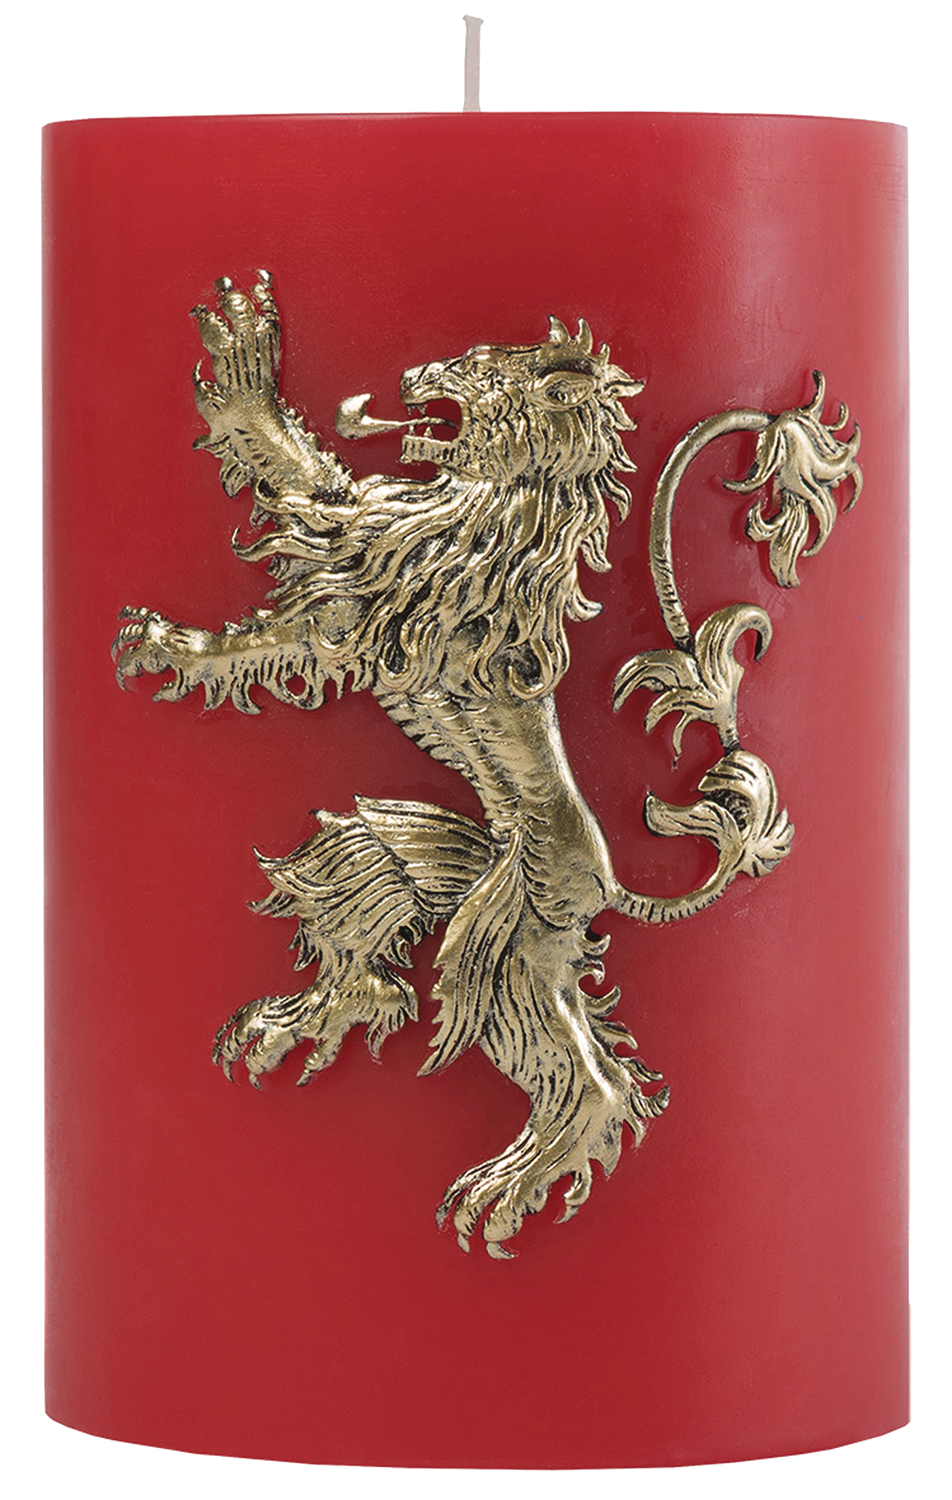 GAME OF THRONES LANNISTER SCULPTED SIGIL CANDLE